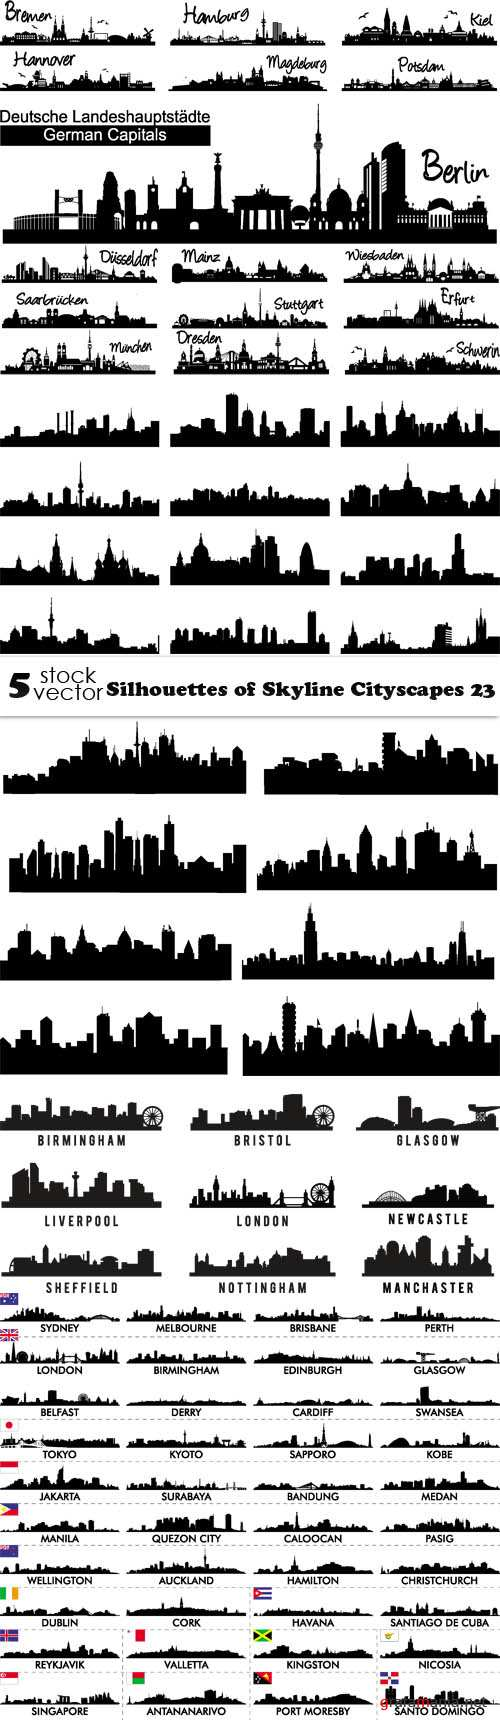 Vectors - Silhouettes of Skyline Cityscapes 23